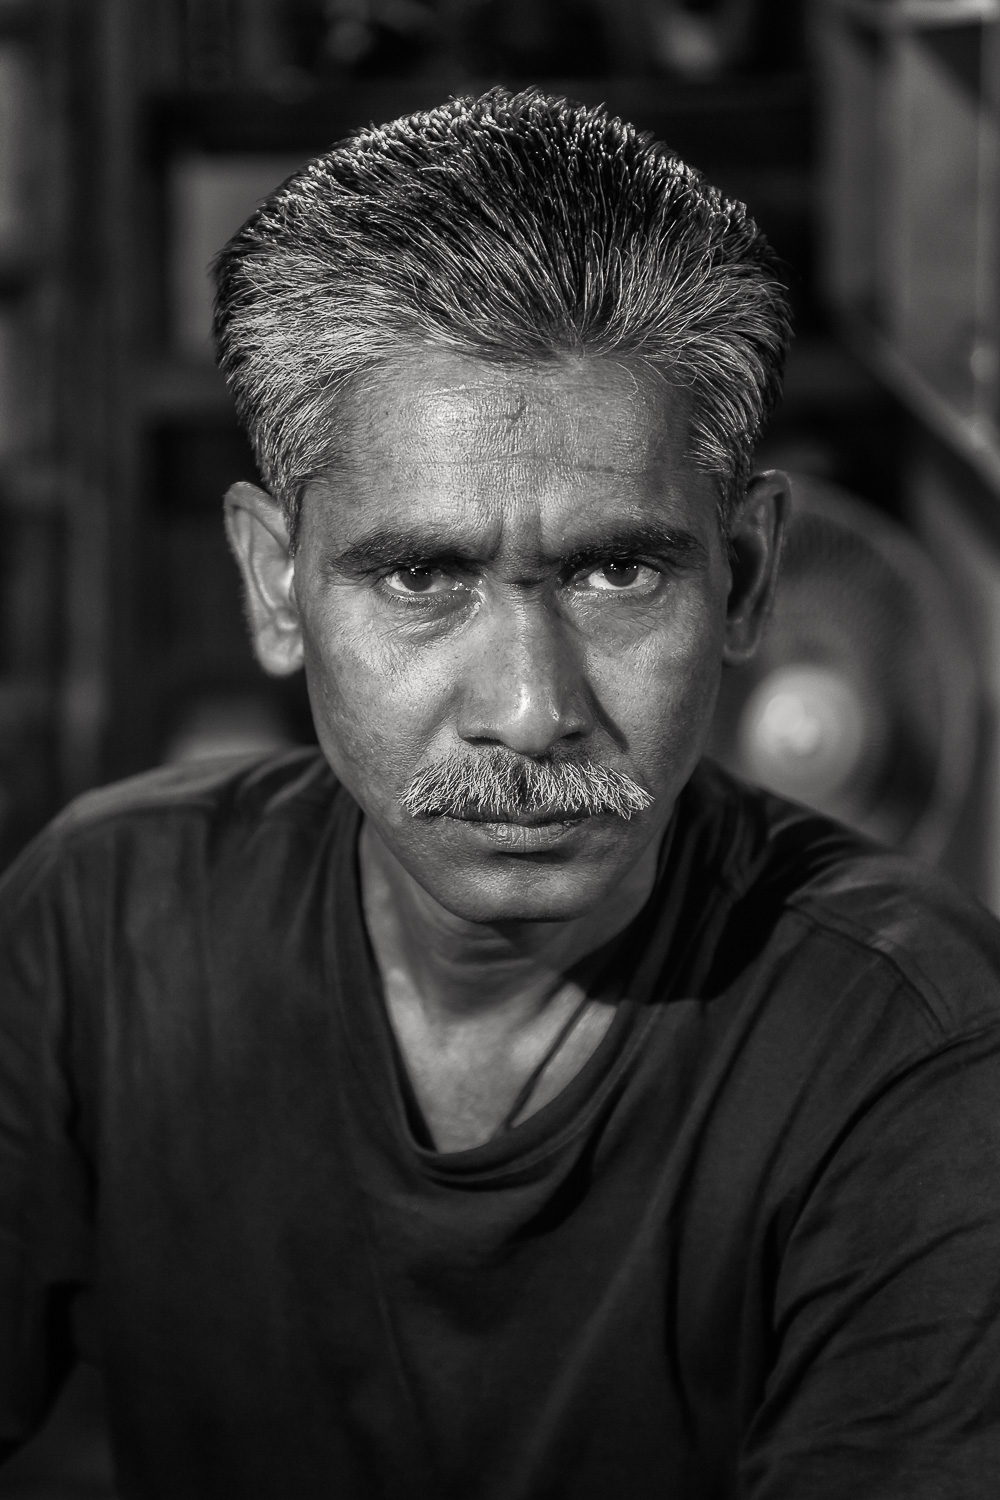 And    What is Wisdom   , Father? A    black and white portrait    of a    father figure    in    Kolkata, India   .